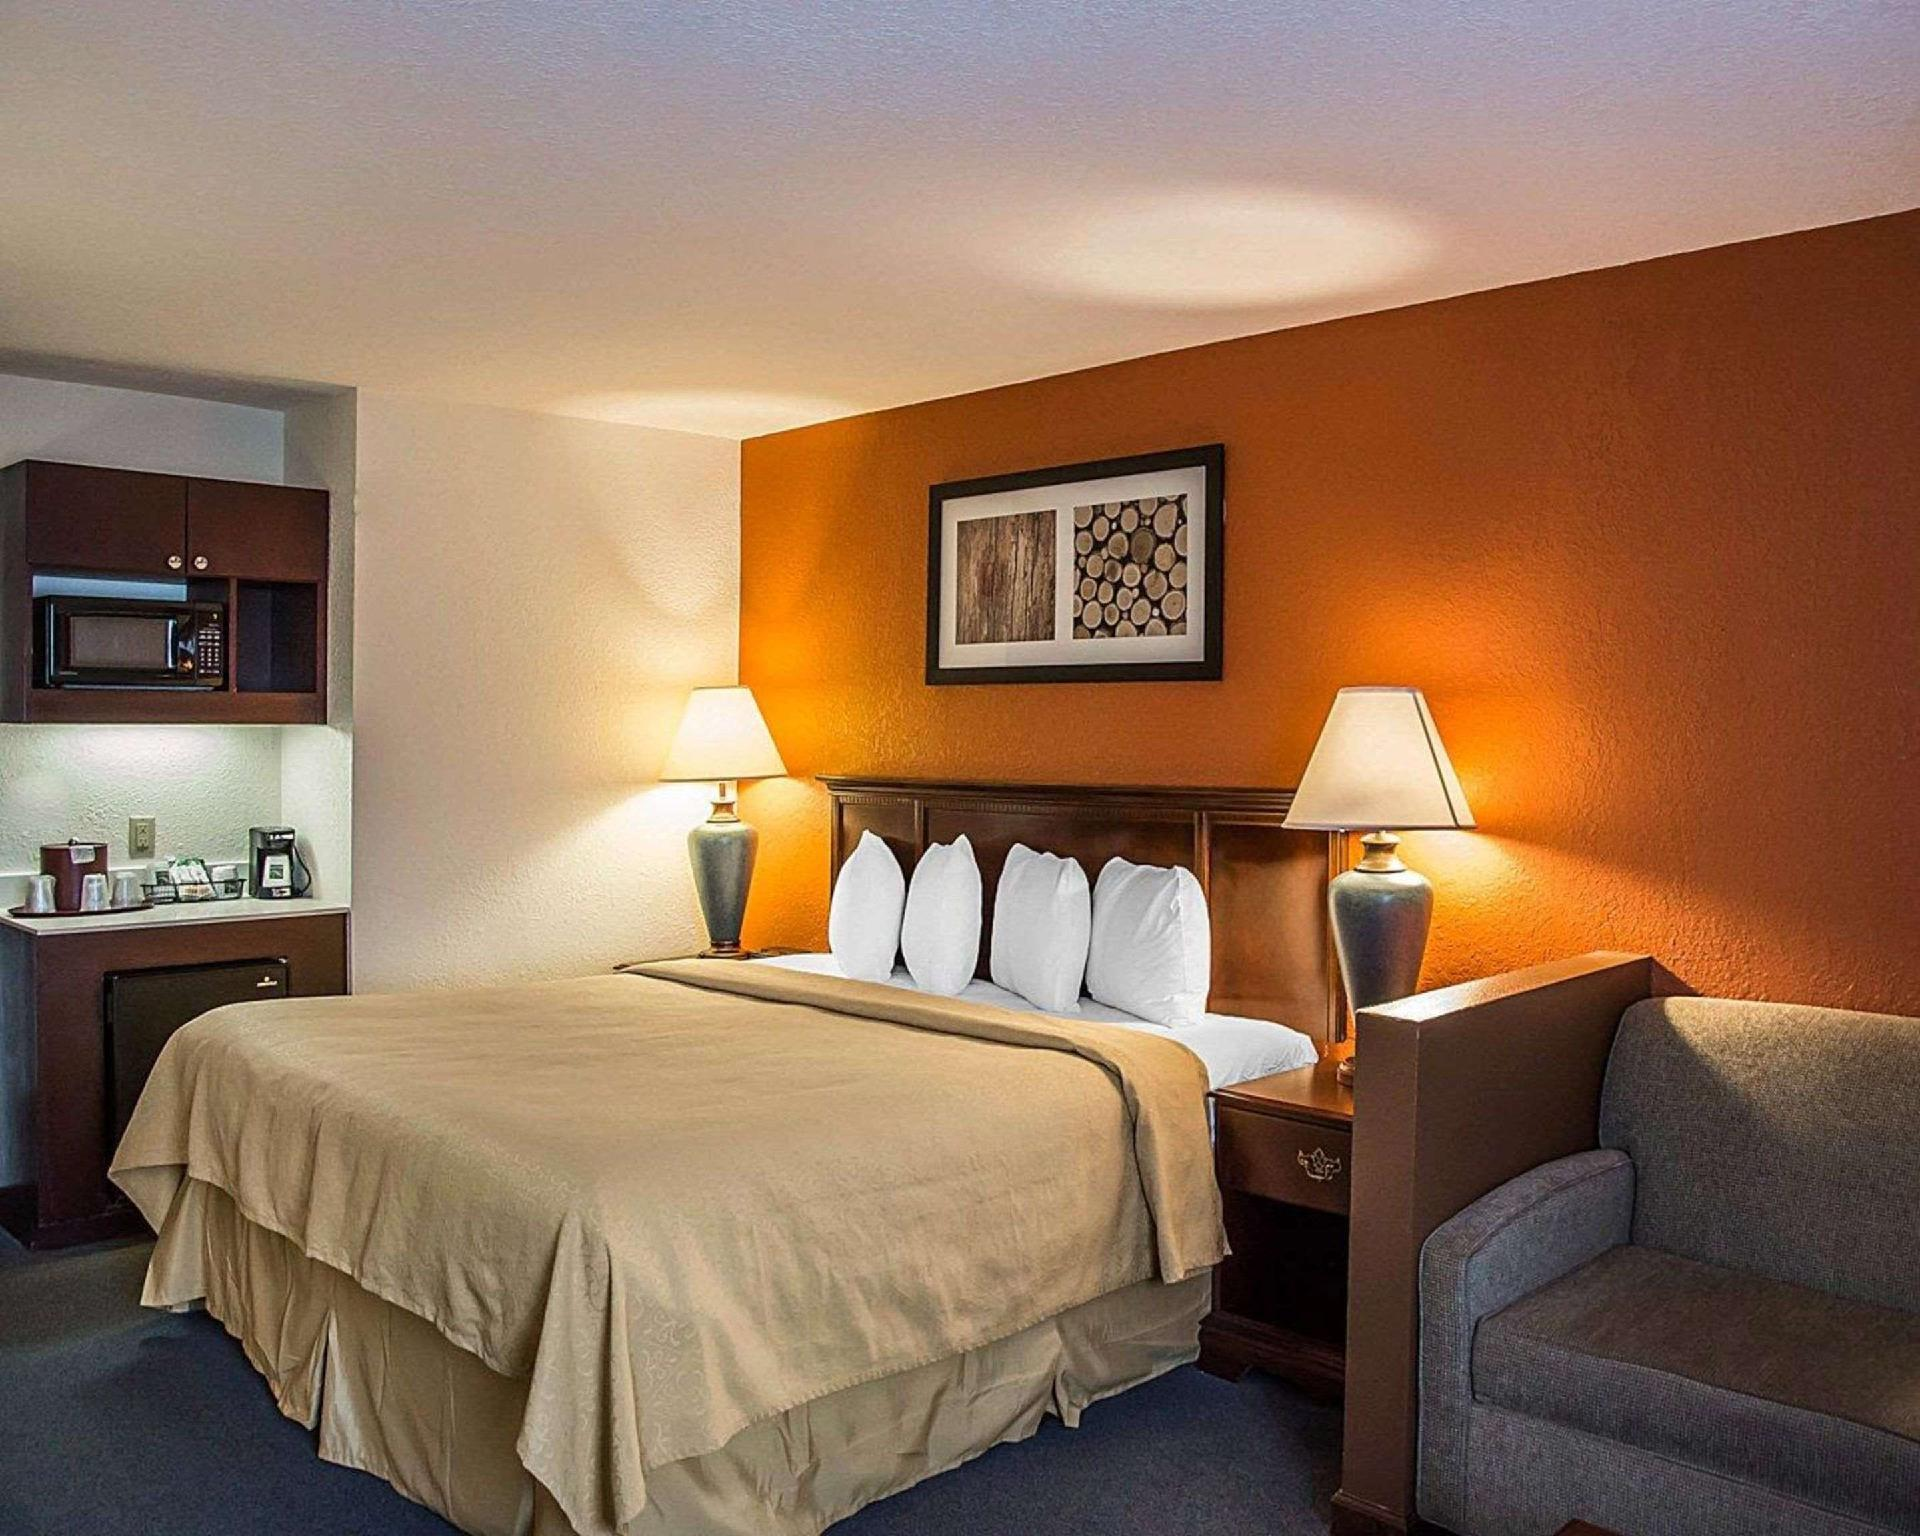 1 King Bed, Suite, Non-Smoking